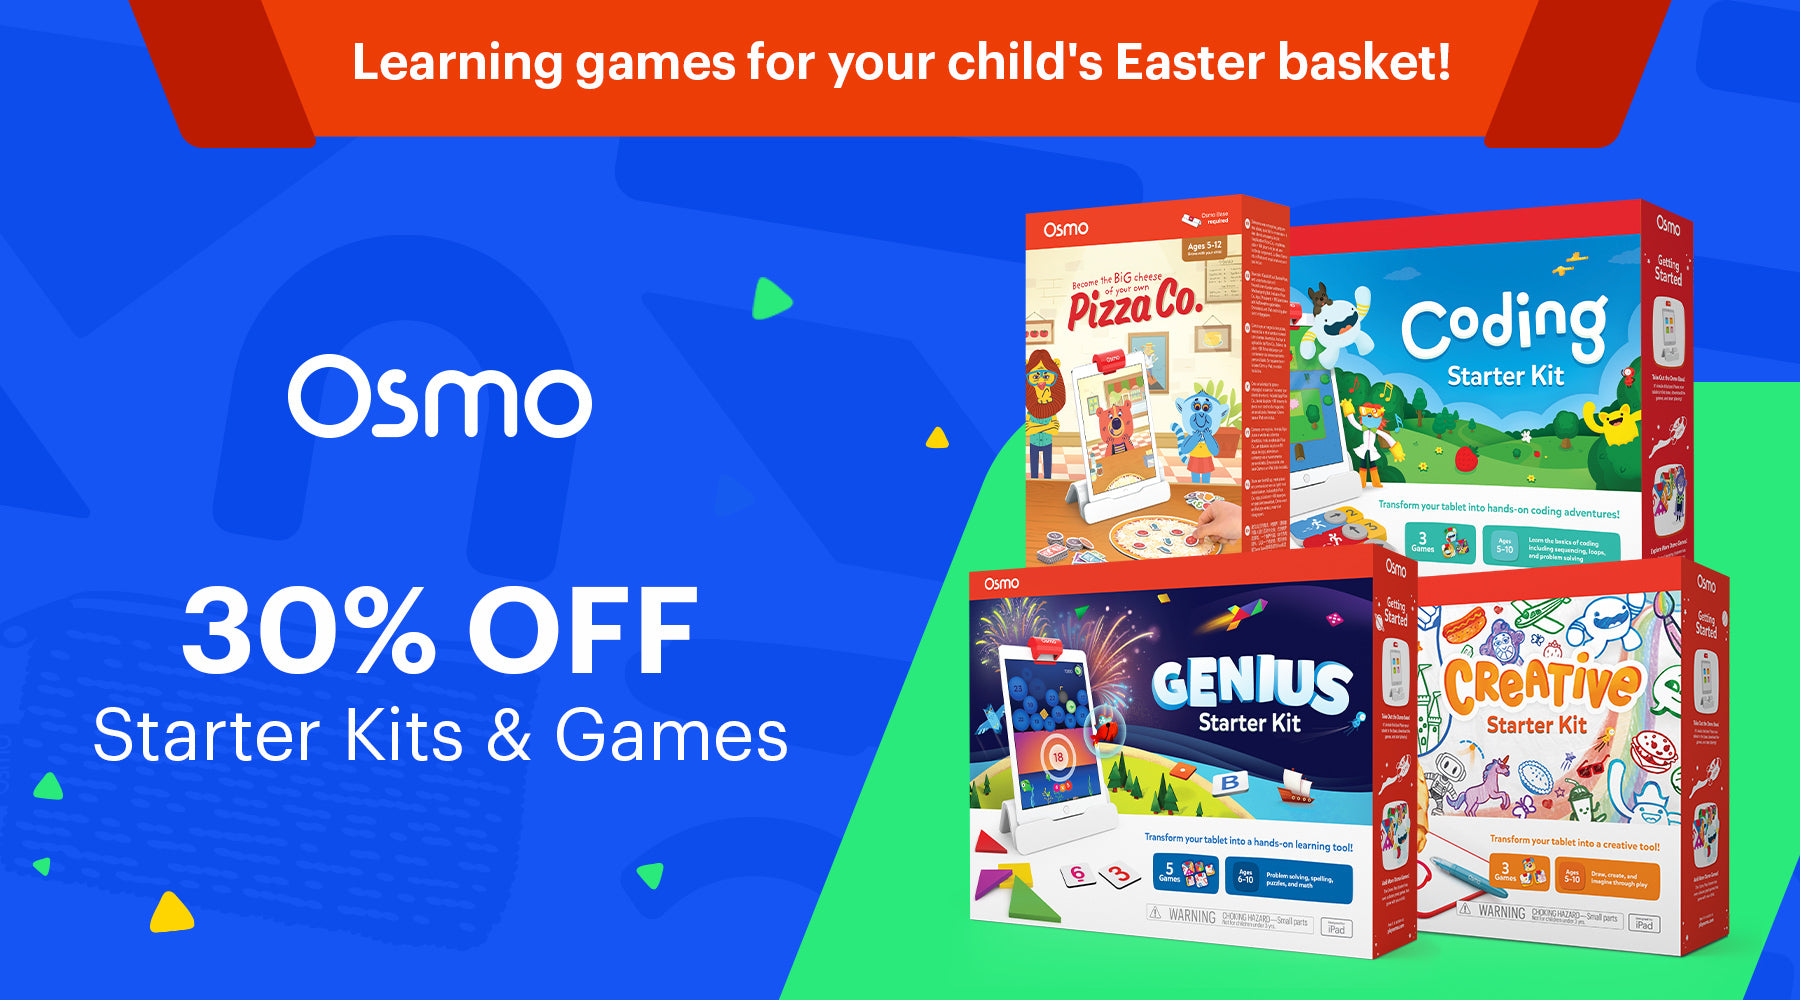 Osmo 30% OFF Sale!